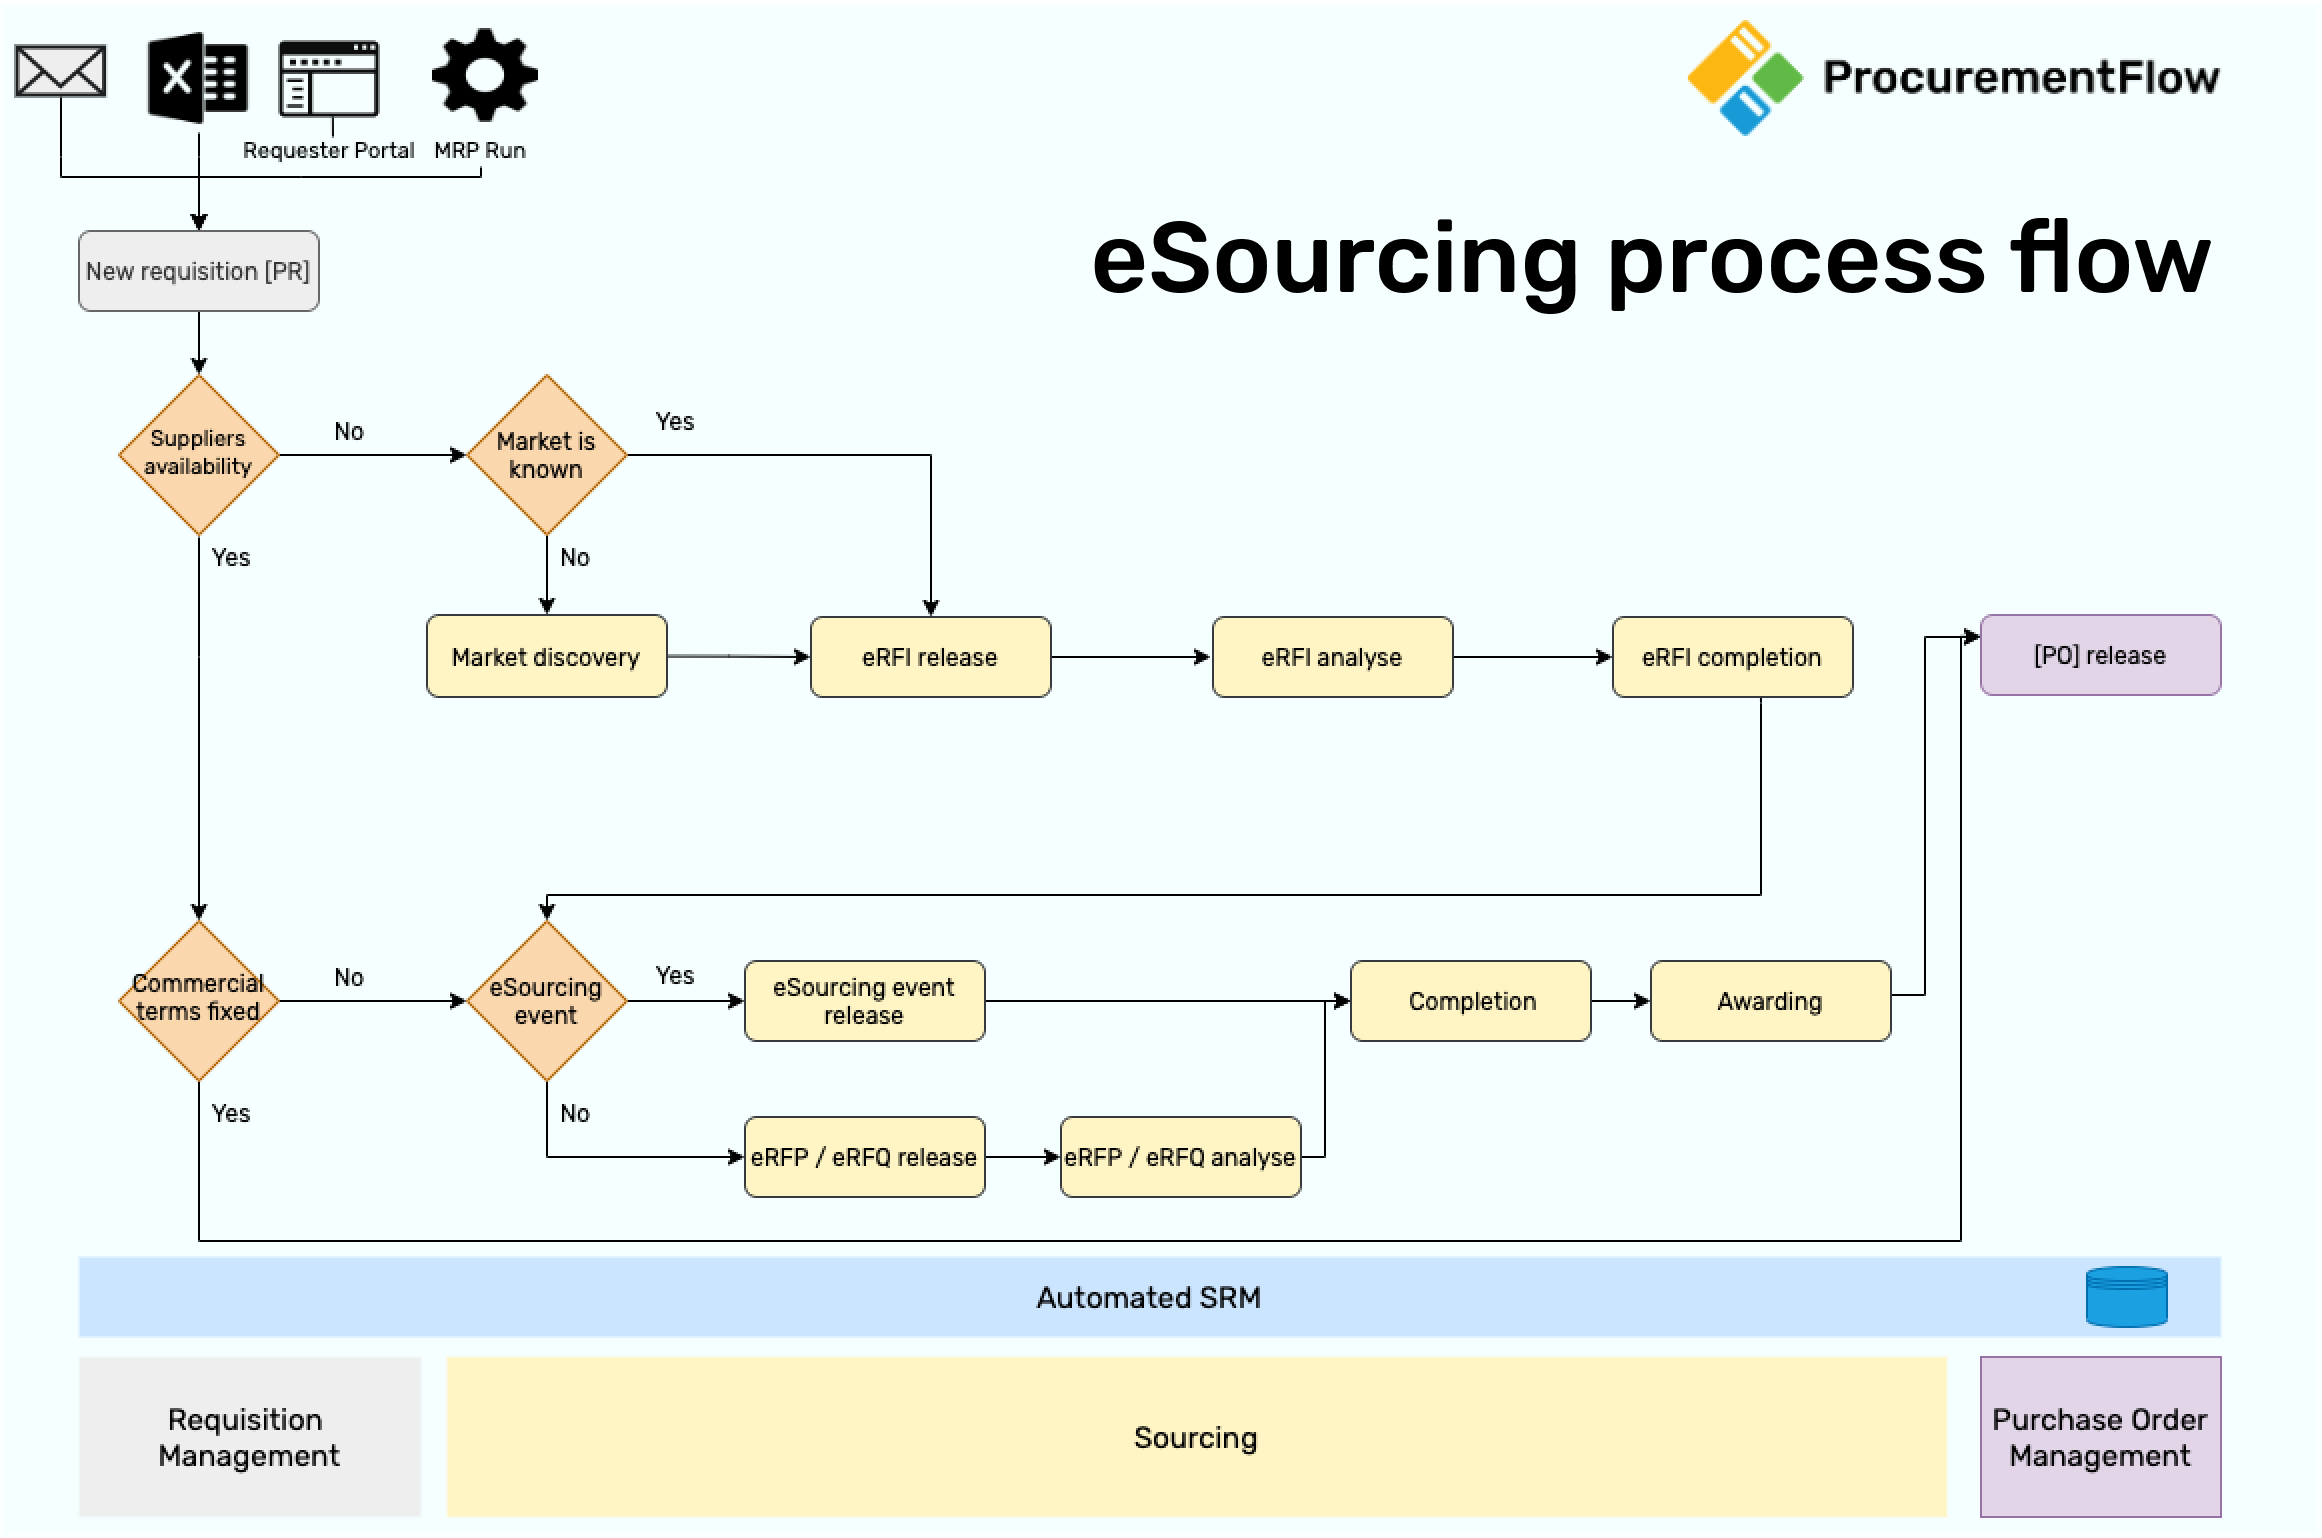 eSourcing process low